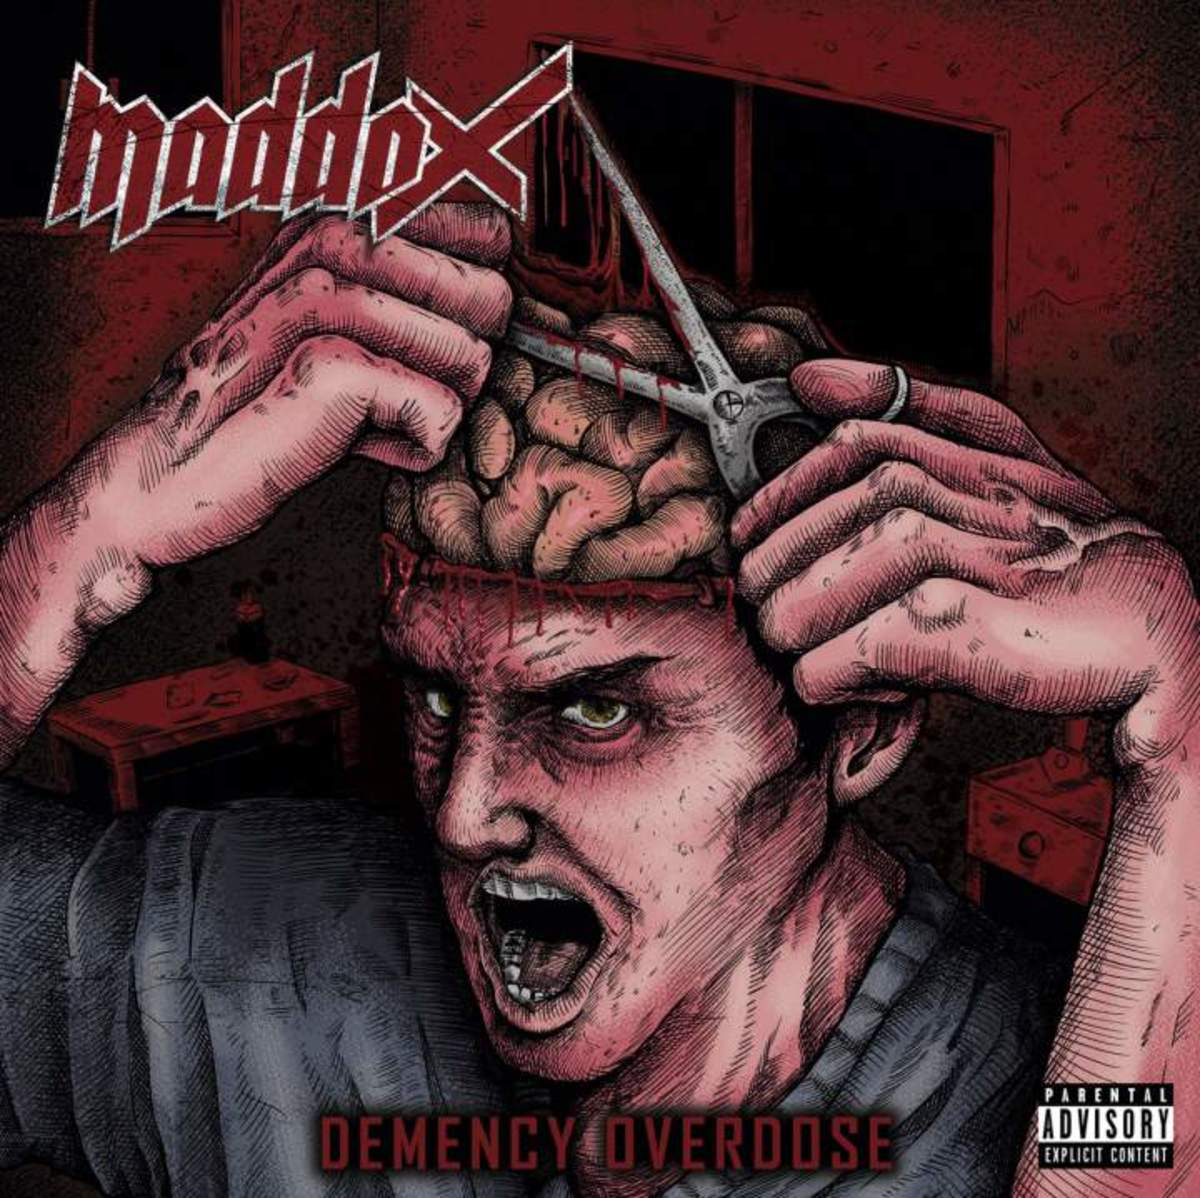 review-of-the-album-called-demency-overdose-by-mexican-thrash-metal-band-maddox